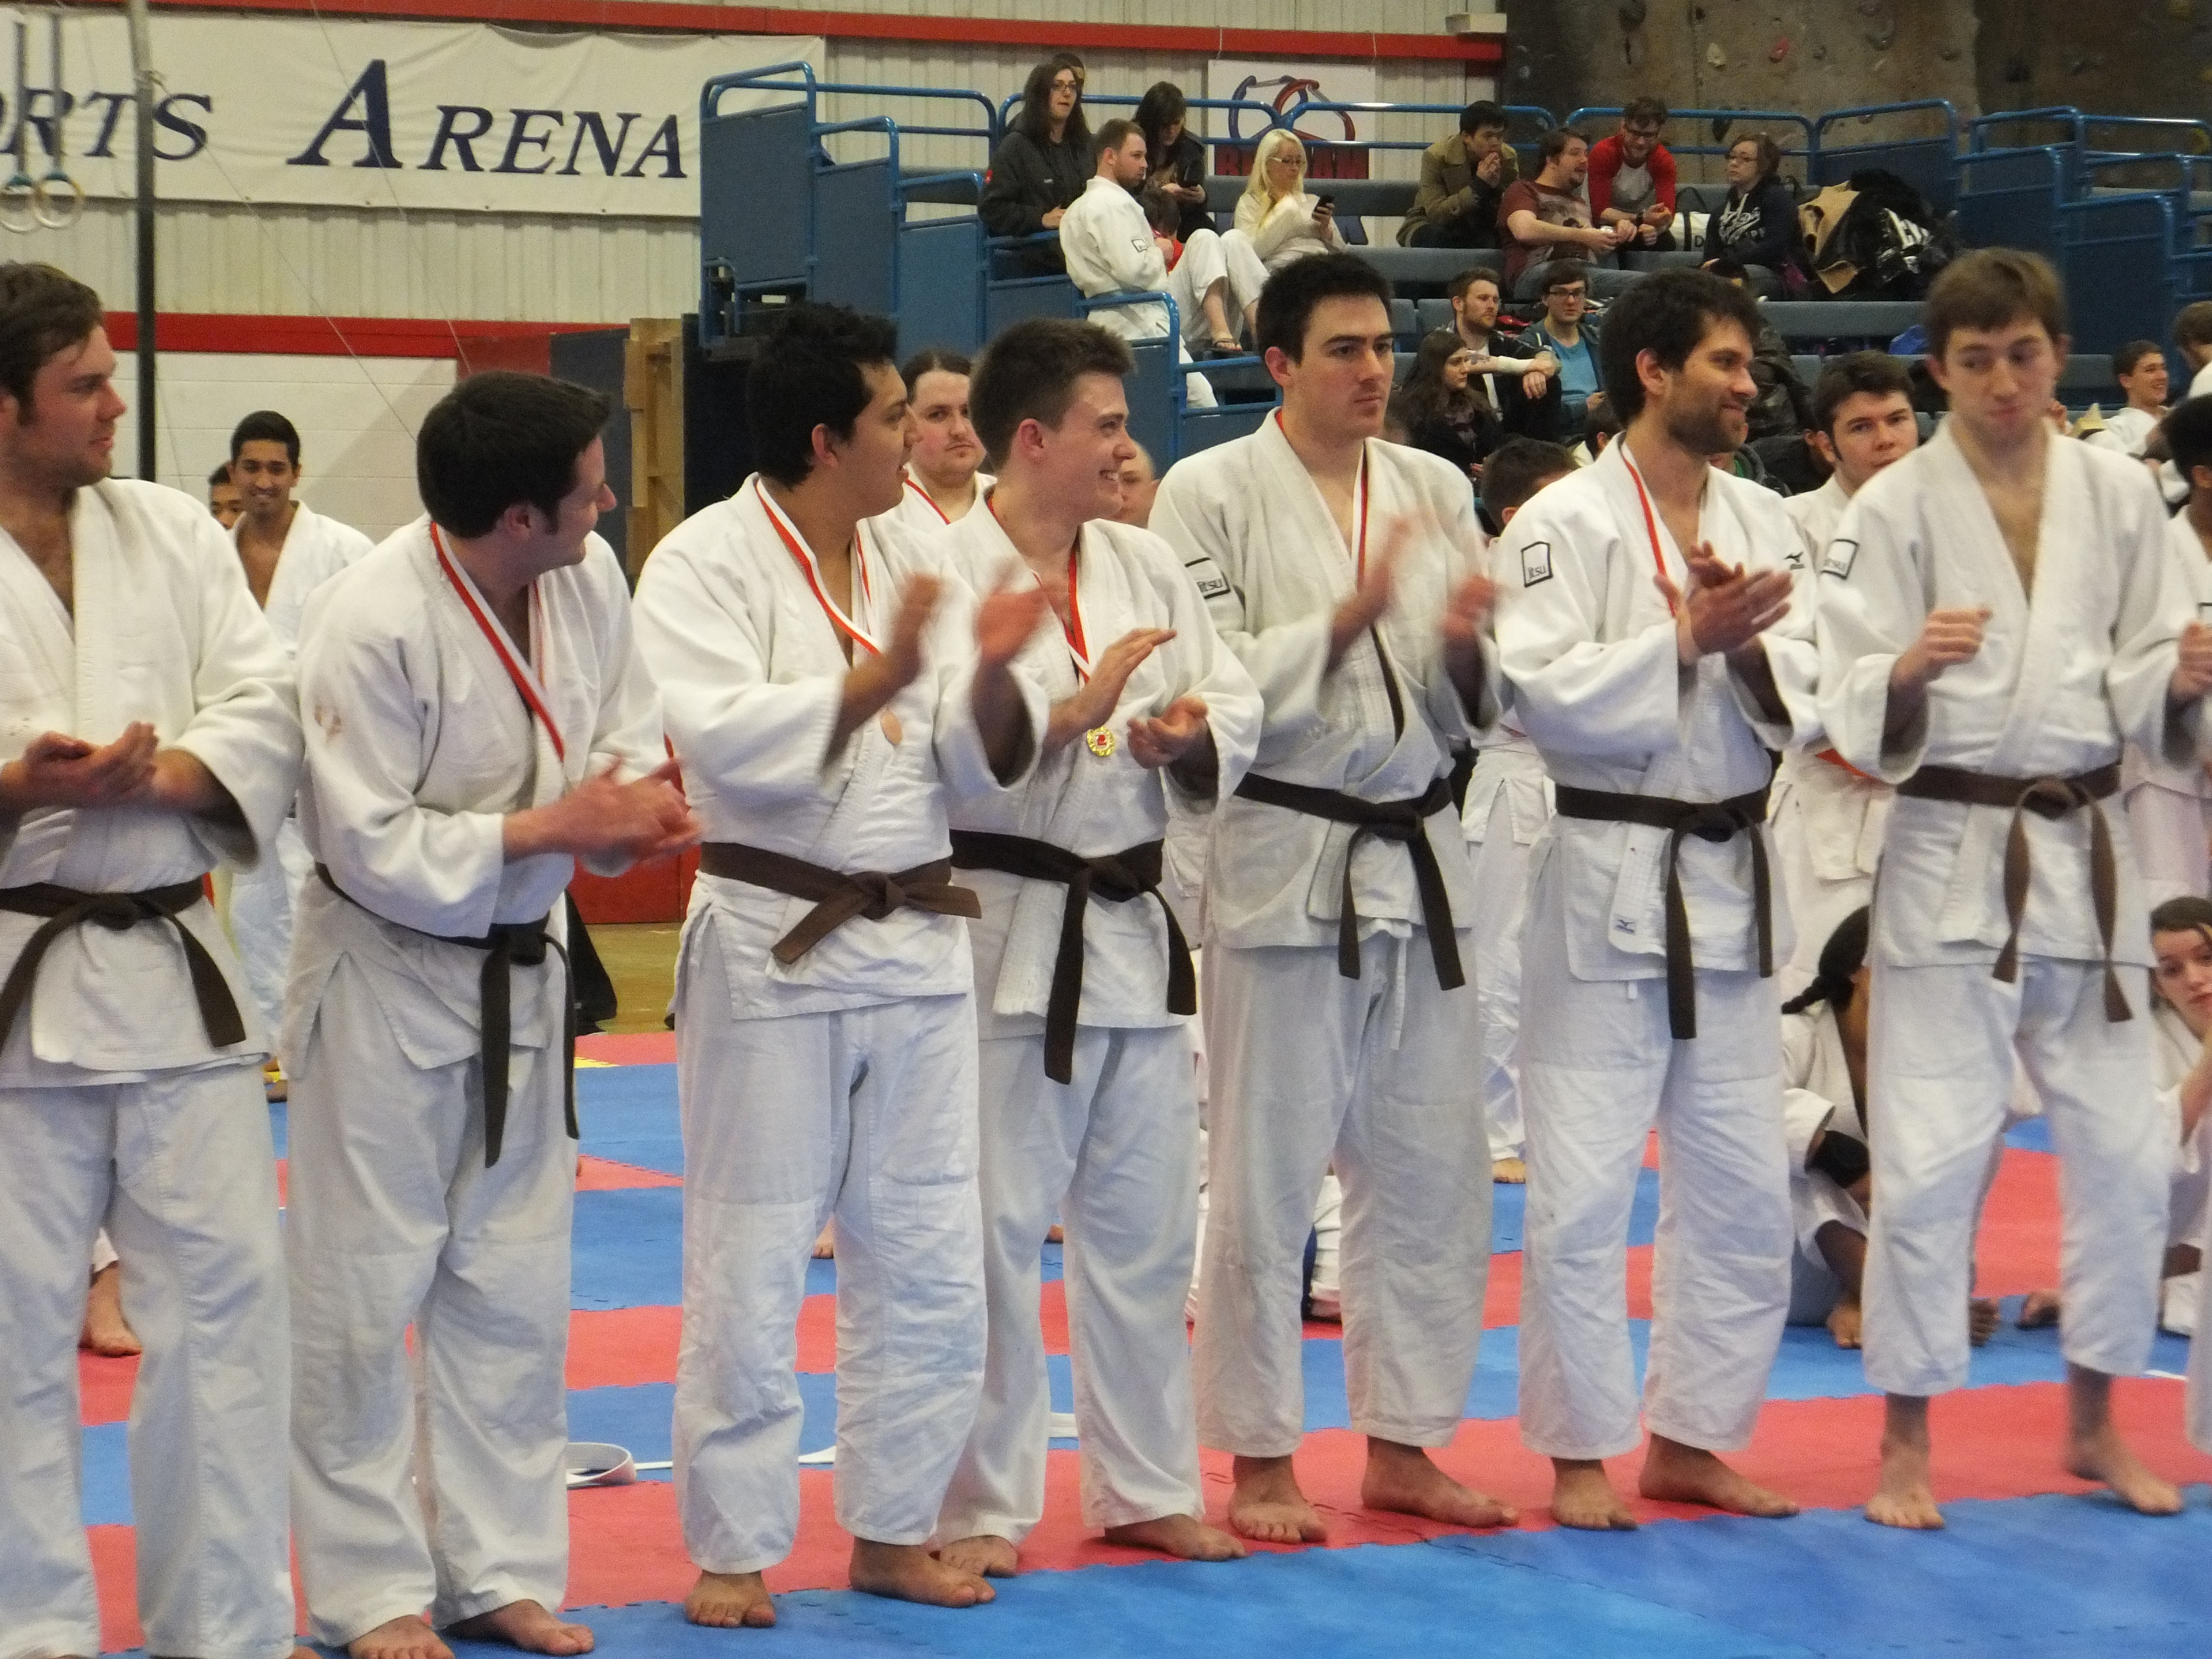 Brown belts with medals